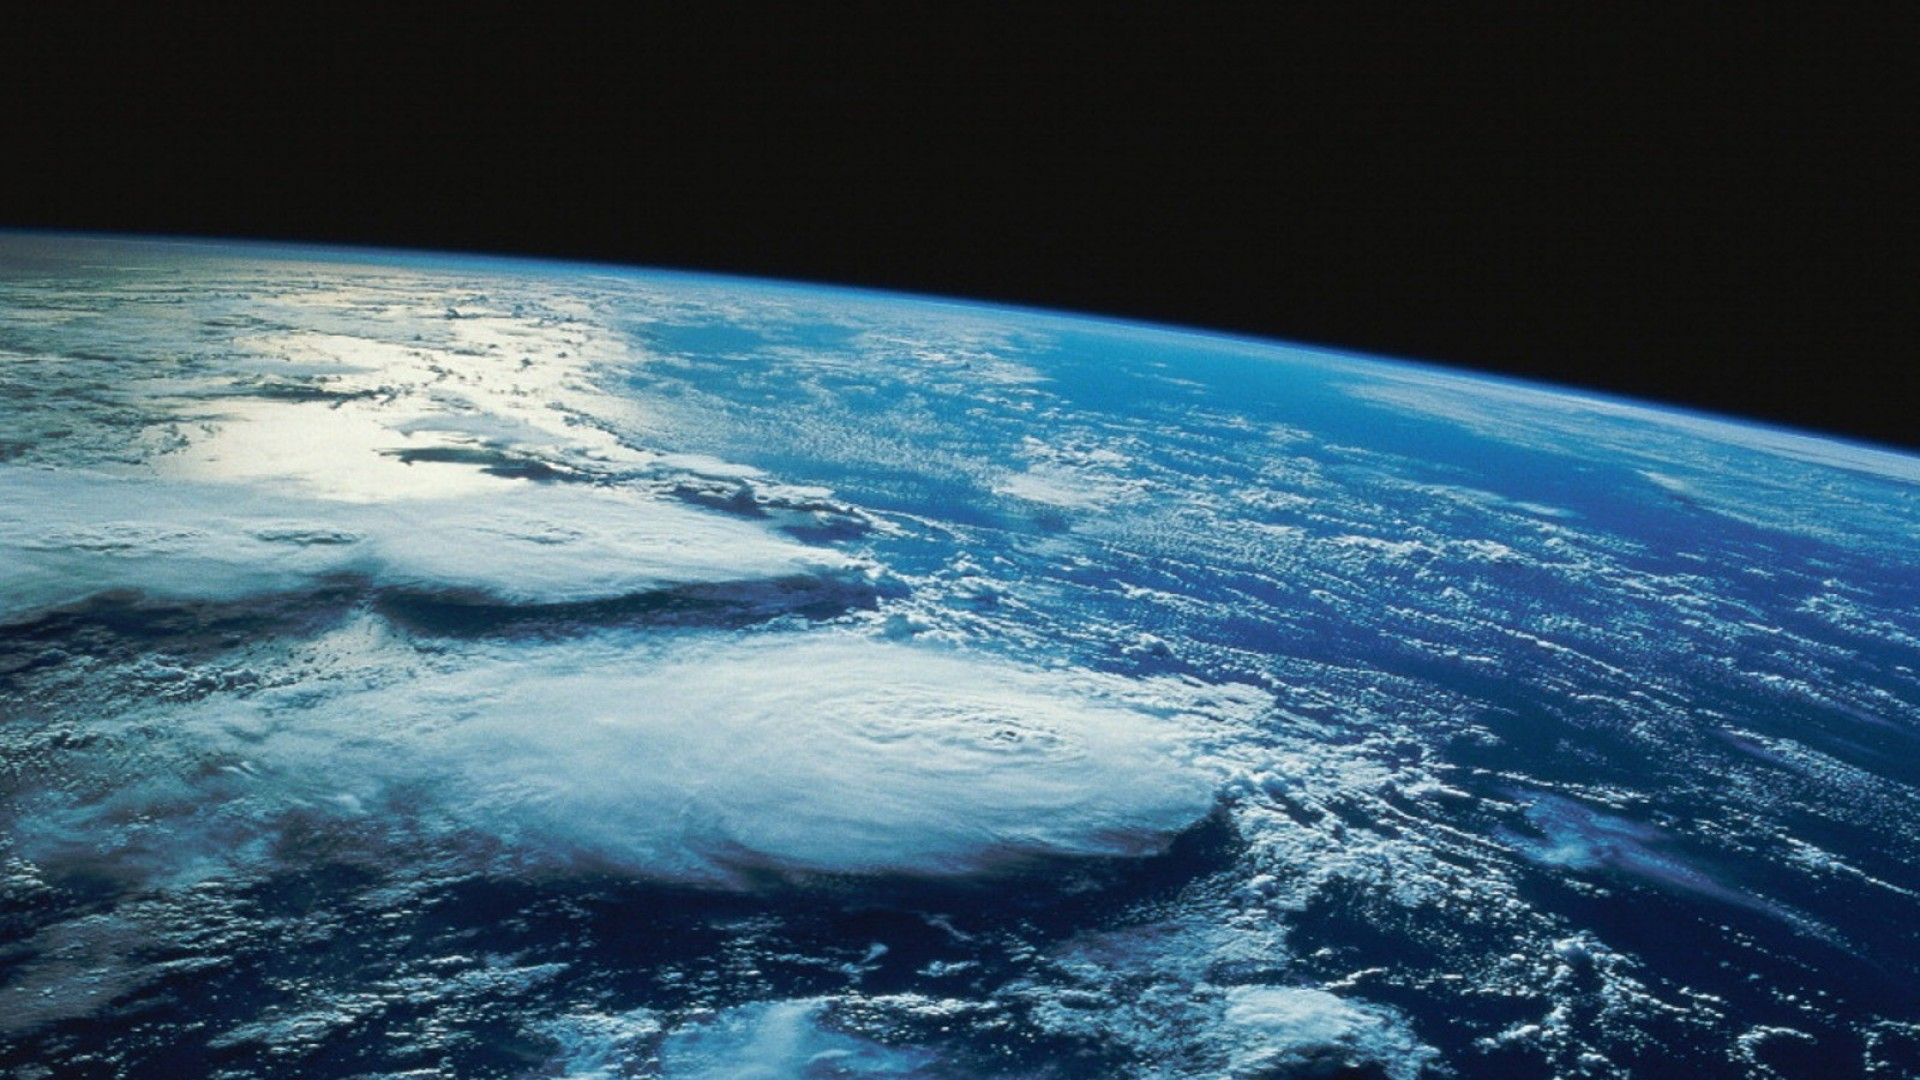 Awesome Planet Earth Wallpaper HD 15 High Resolution Full 1920x1080